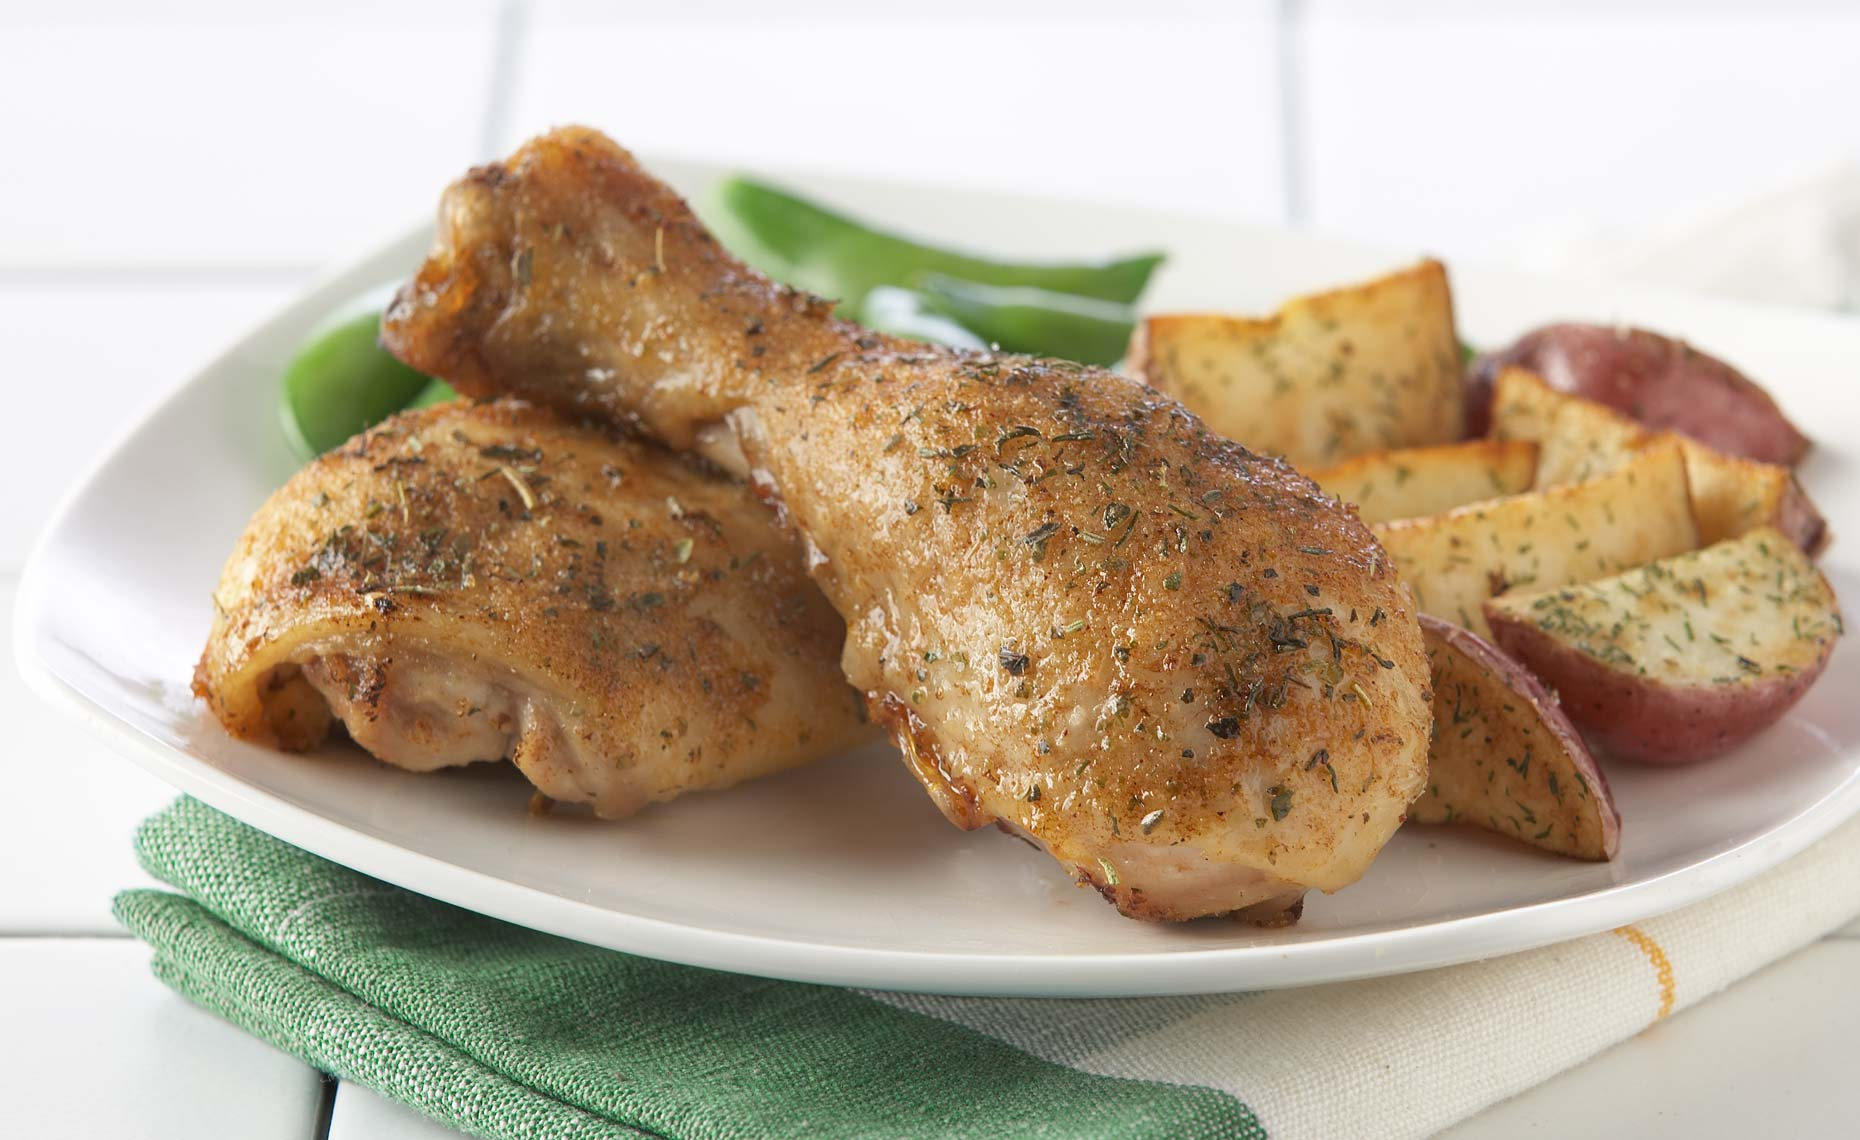 maryland-food-photographers-chicken-drumsticks-potatoes-24